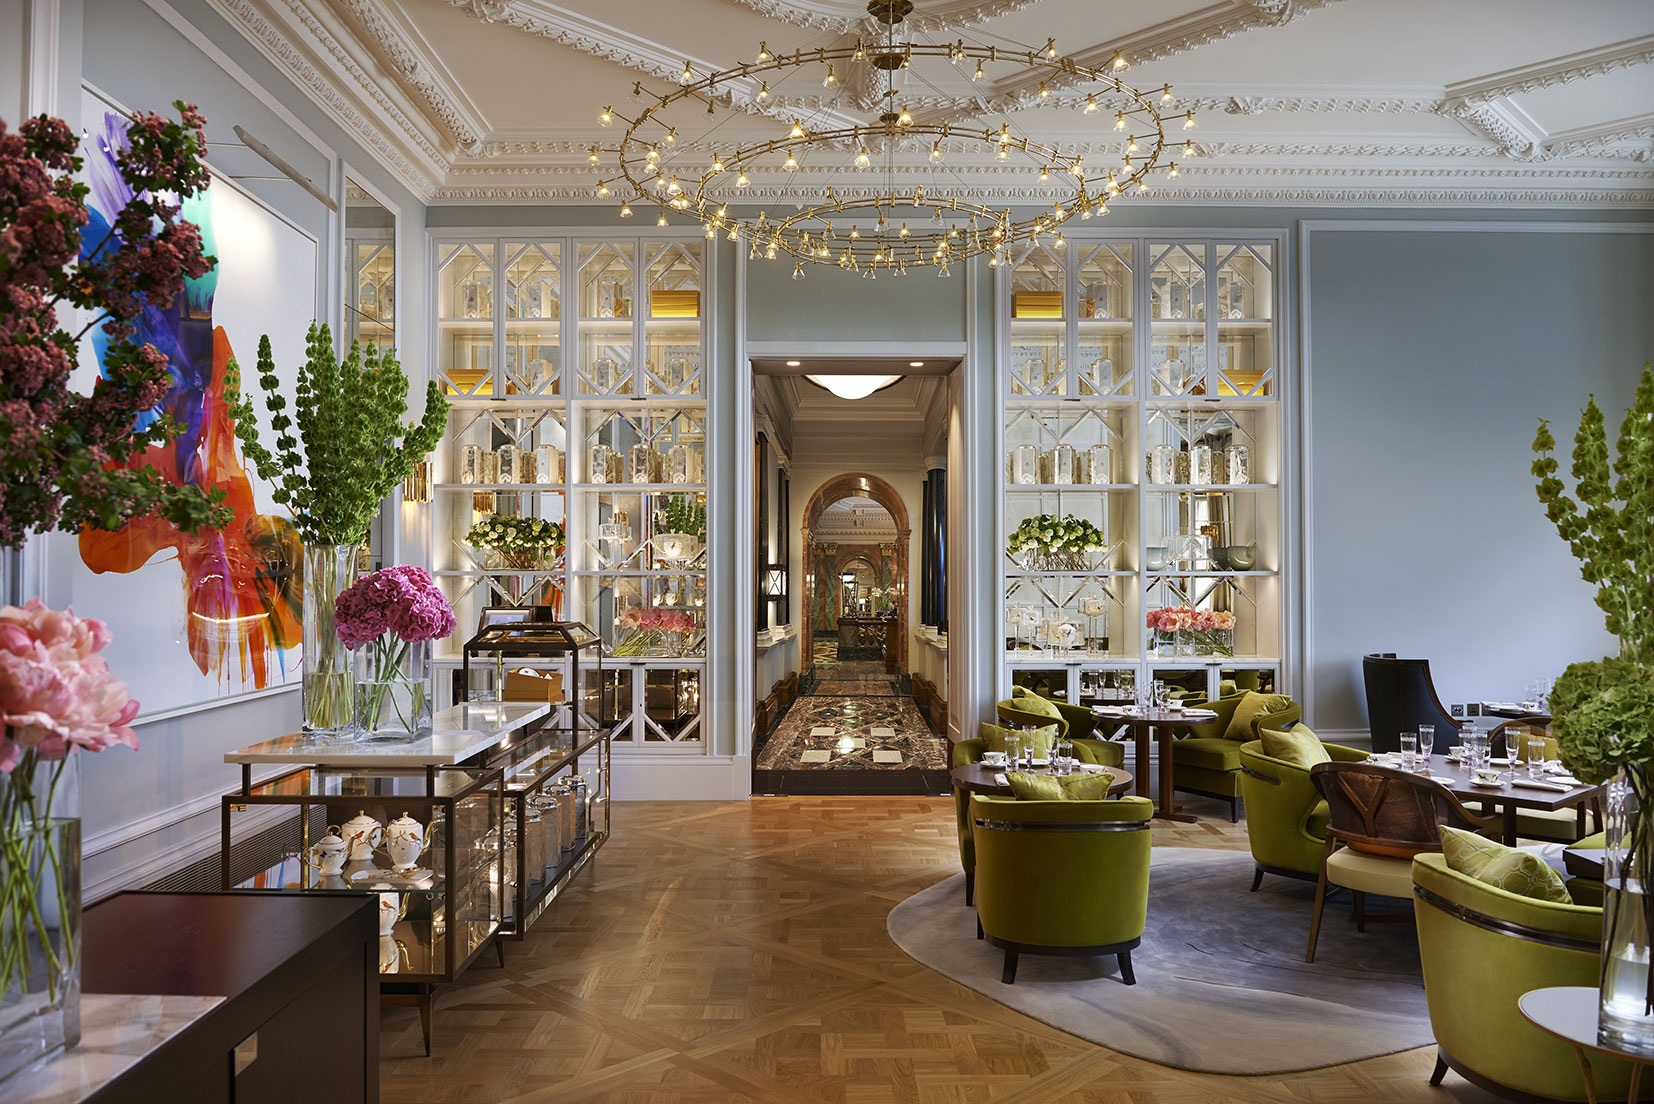 Reserve a table at The Rosebery at Mandarin Oriental Hotel